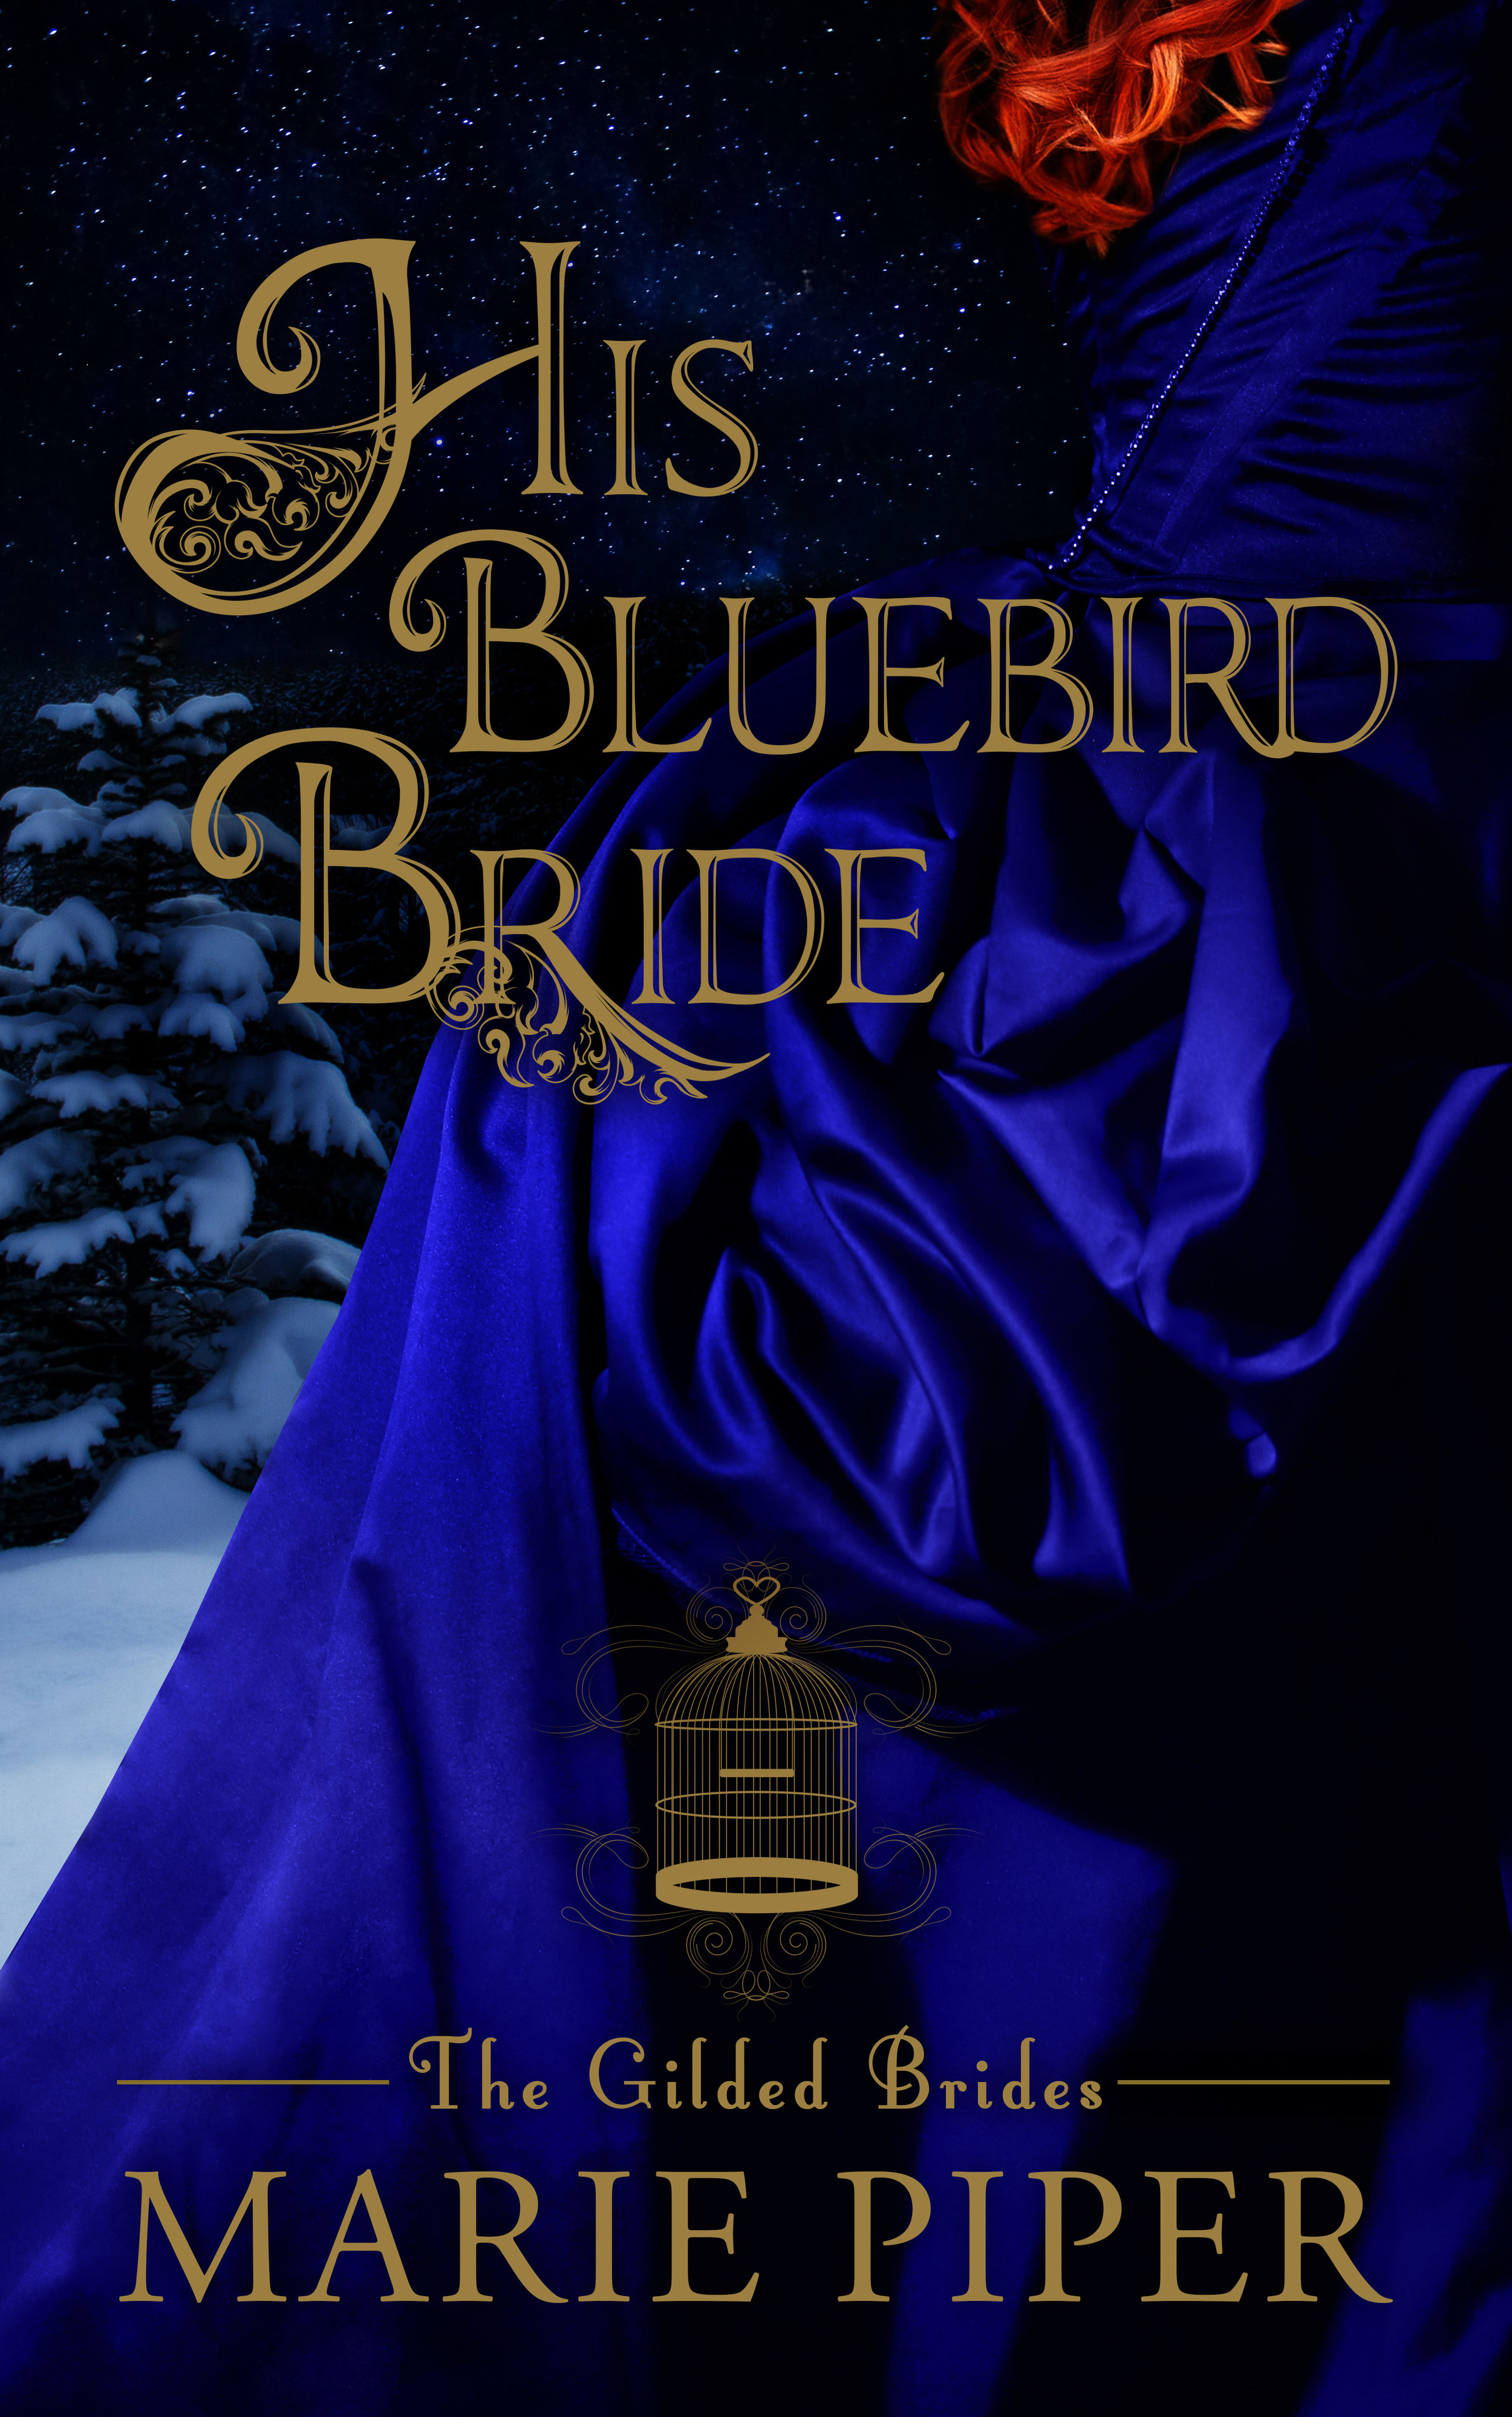 His Bluebird Bride - Gilded Brides #1Available in ebook and paperbackBillie the Bluebird has had enough. For six years she's worked as Madam of The Gilded Cage, an upscale brothel in New Orleans, waiting for her lover—the club's owner—to marry her. When instead he breaks her heart, she answers a mail-order bride advertisement from a little town called Dancer in the wild Dakota territory, as far away from New Orleans as possible. Claiming to be a widow named Willa, she arrives just before Christmas and marries the kind and responsible town doctor Elijah Higgins.Once, Elijah dreamed of a life full of adventure like in the dime store novels he loves, but Dancer is a tough place. Elijah is thrilled his bride appears to be a hard-working woman of simple tastes. Life is about responsibilities, and love is an afterthought at best.Through preparation for Dancer's holiday party and the coming of winter snows, Billie and Elijah find themselves drawn closer together into a passion neither expected and that neither can resist. When Dancer is threatened, only Billie can save it. To be the miracle the town needs, will she reveal her sordid past and risk her chance at a happy future?